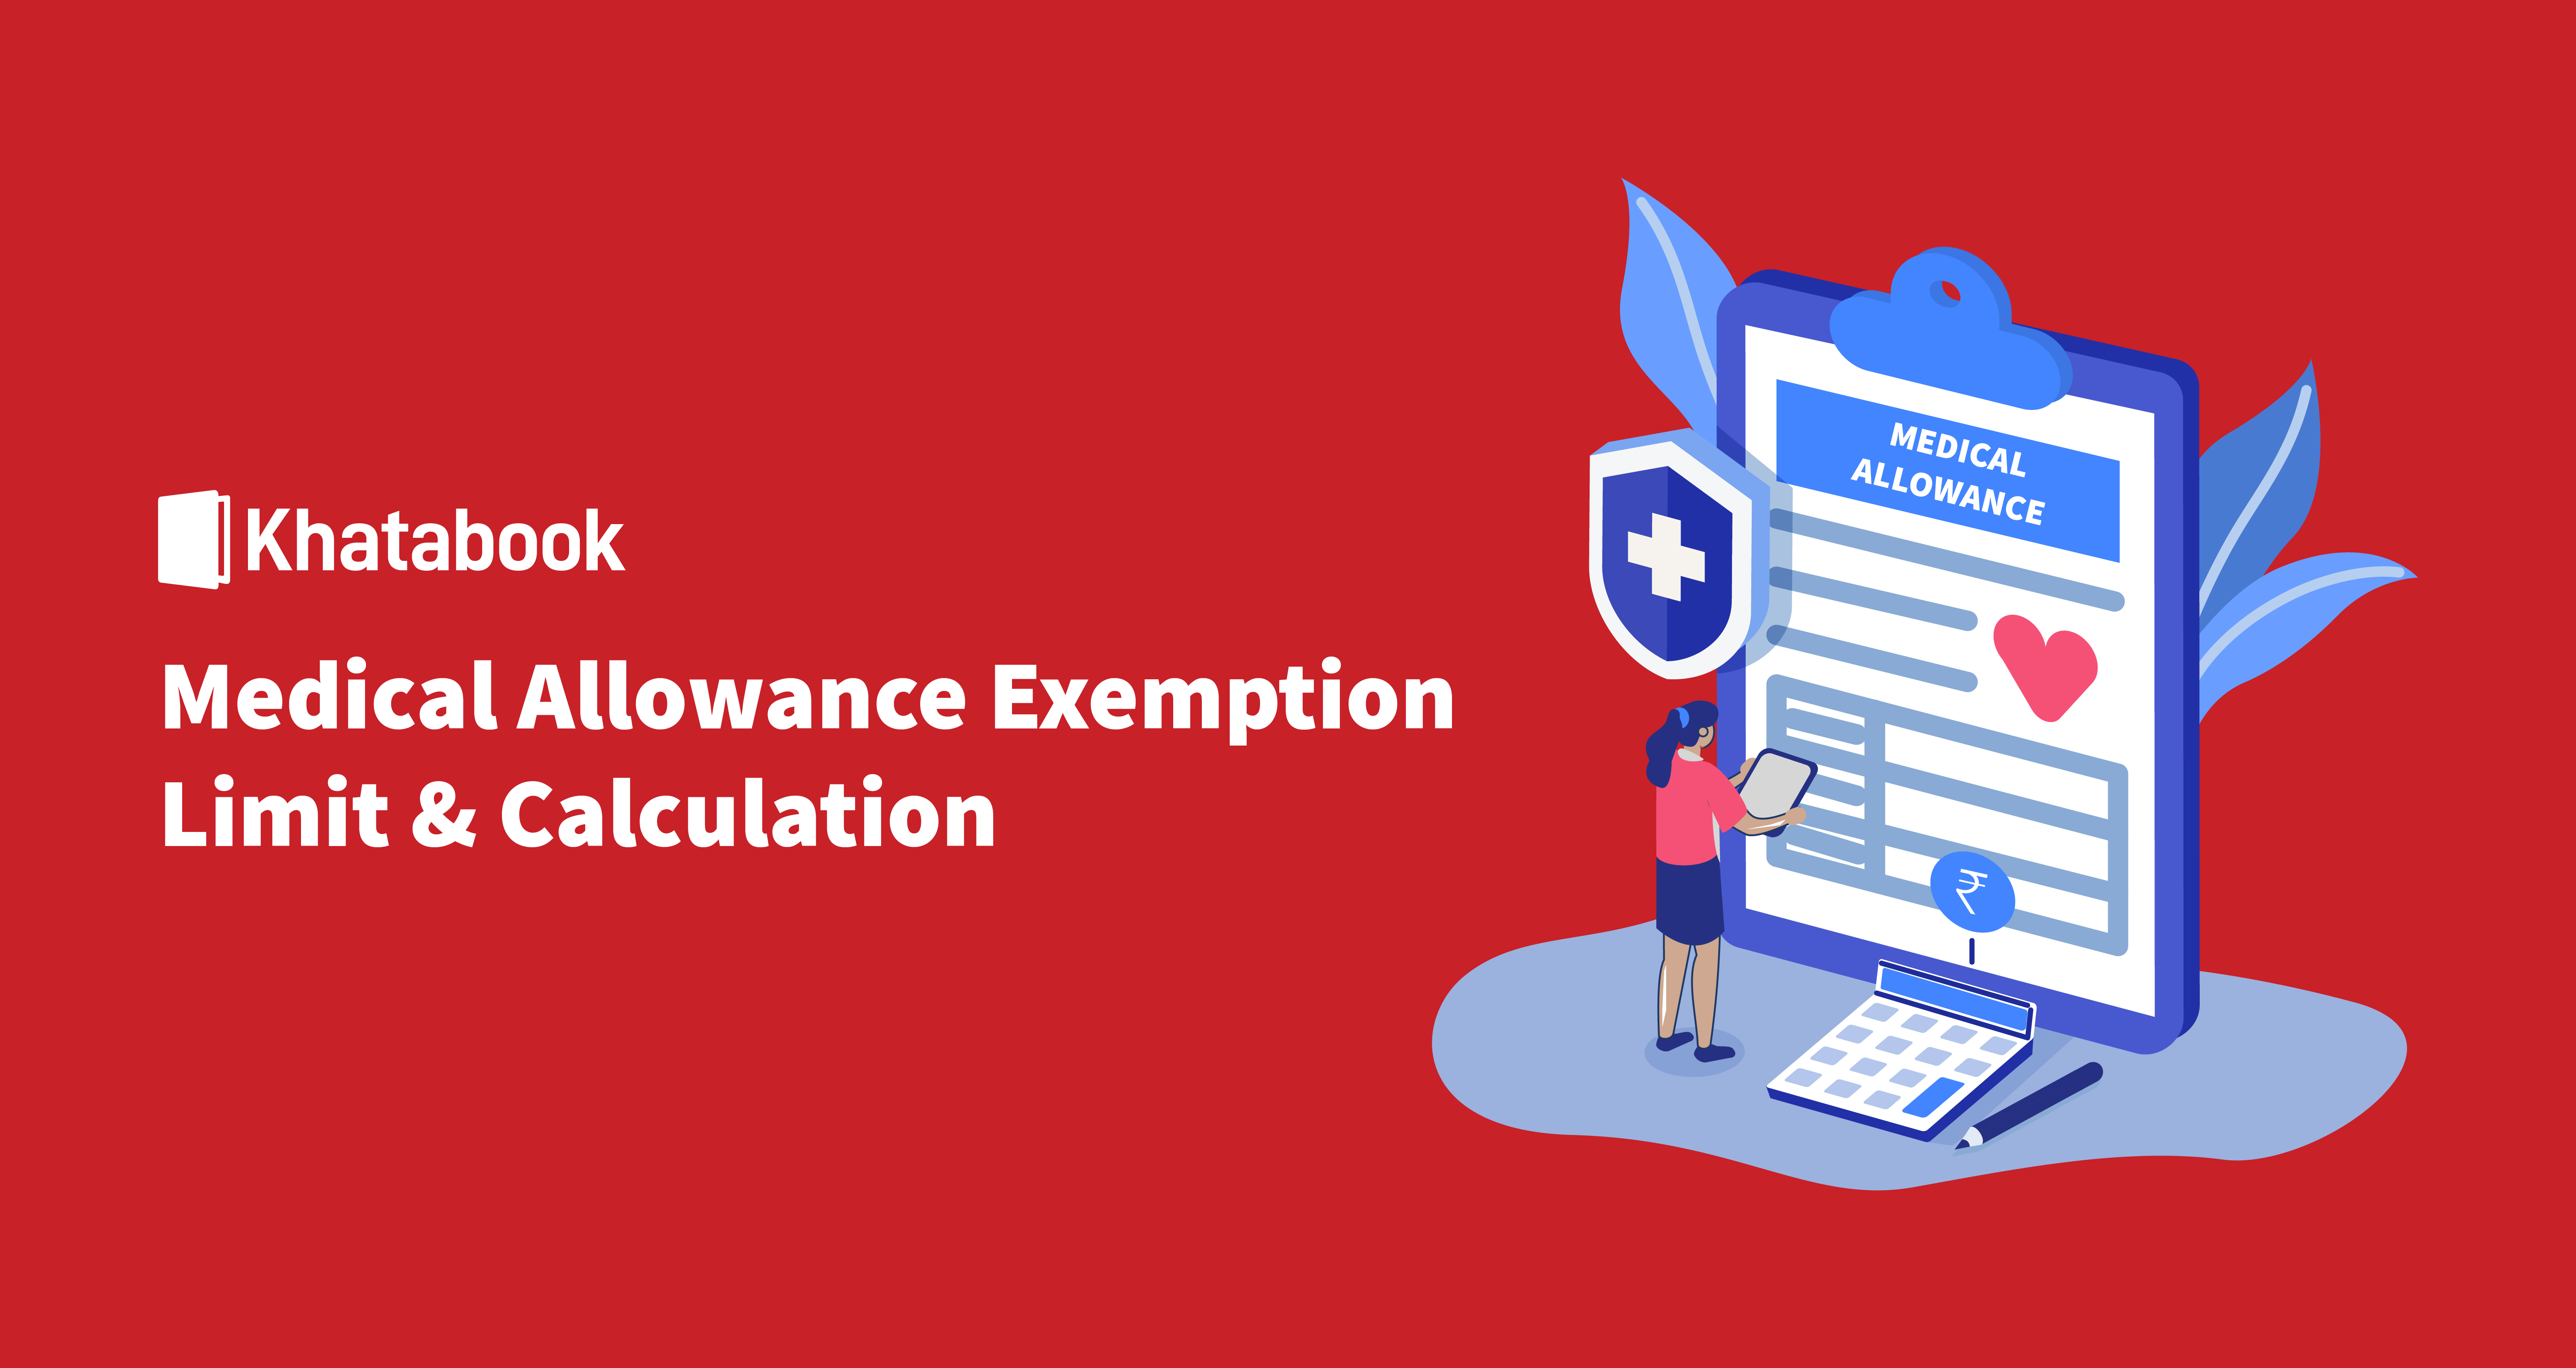 Medical Allowance: Its Exemption Rate, Limit and How To Calculate